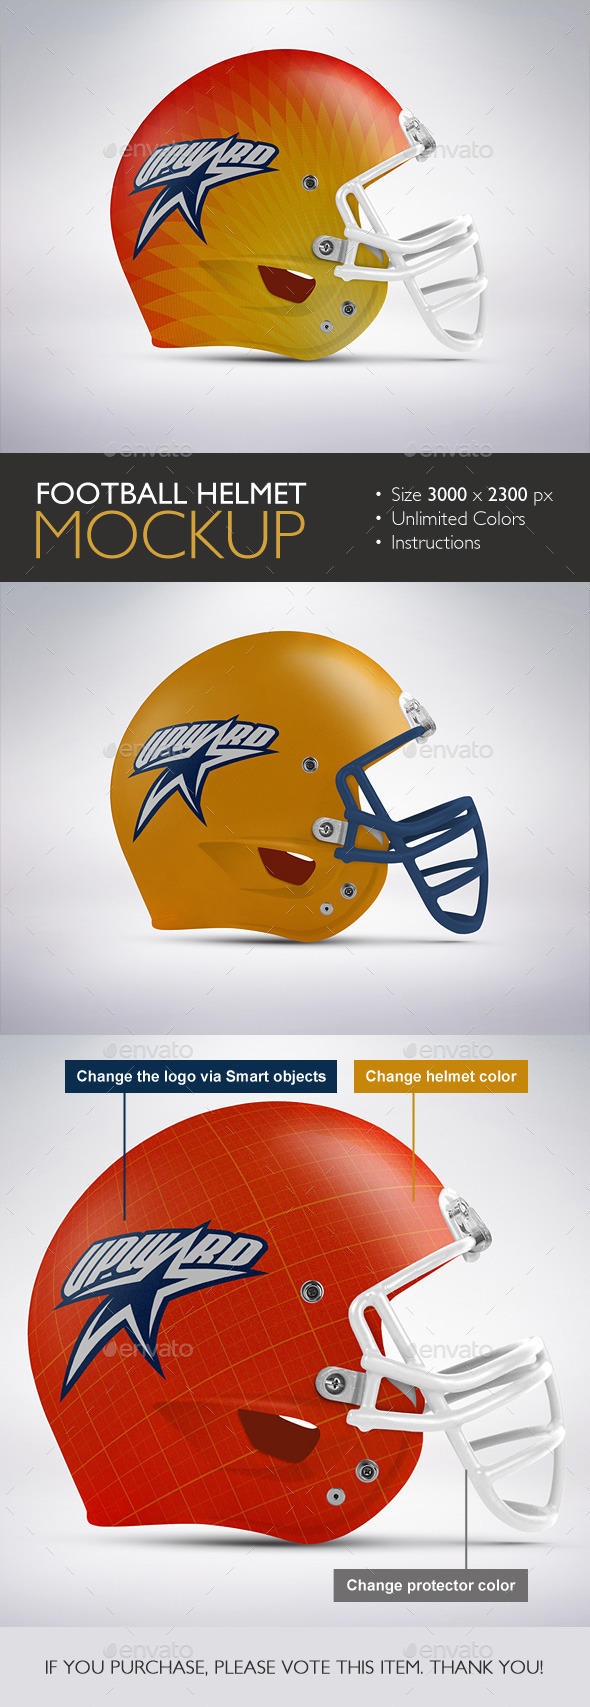 Football Helmet Mockup - Product Mock-Ups Graphics